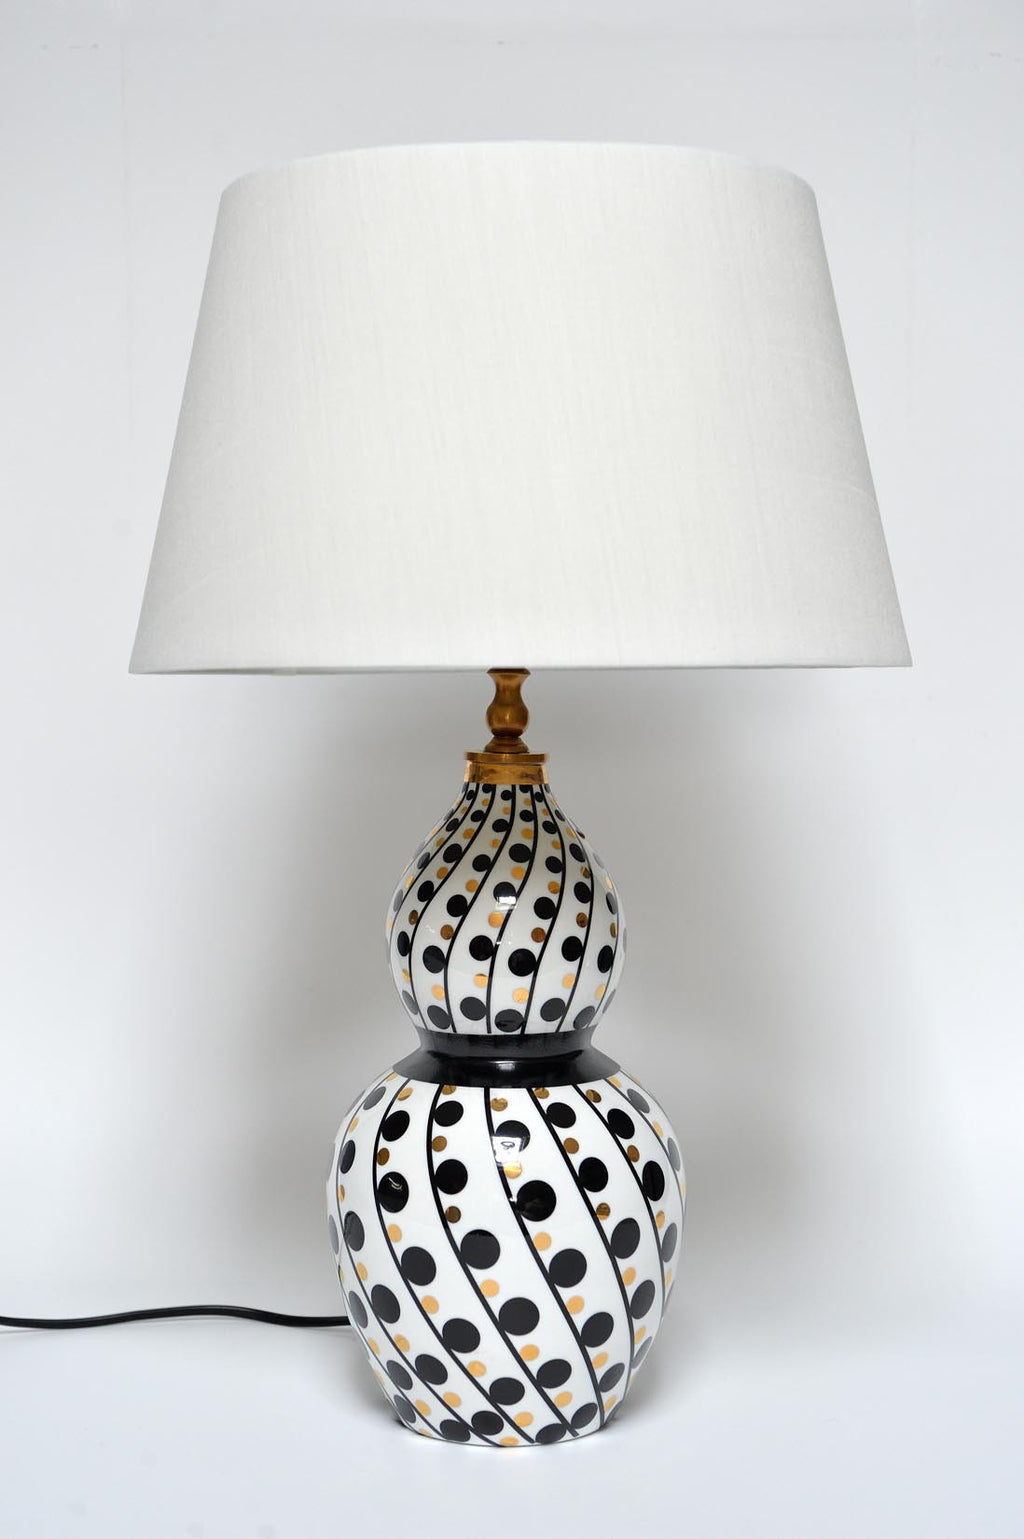 Double gourde porcelain table lamp - L'Atelier Natalia Willmott